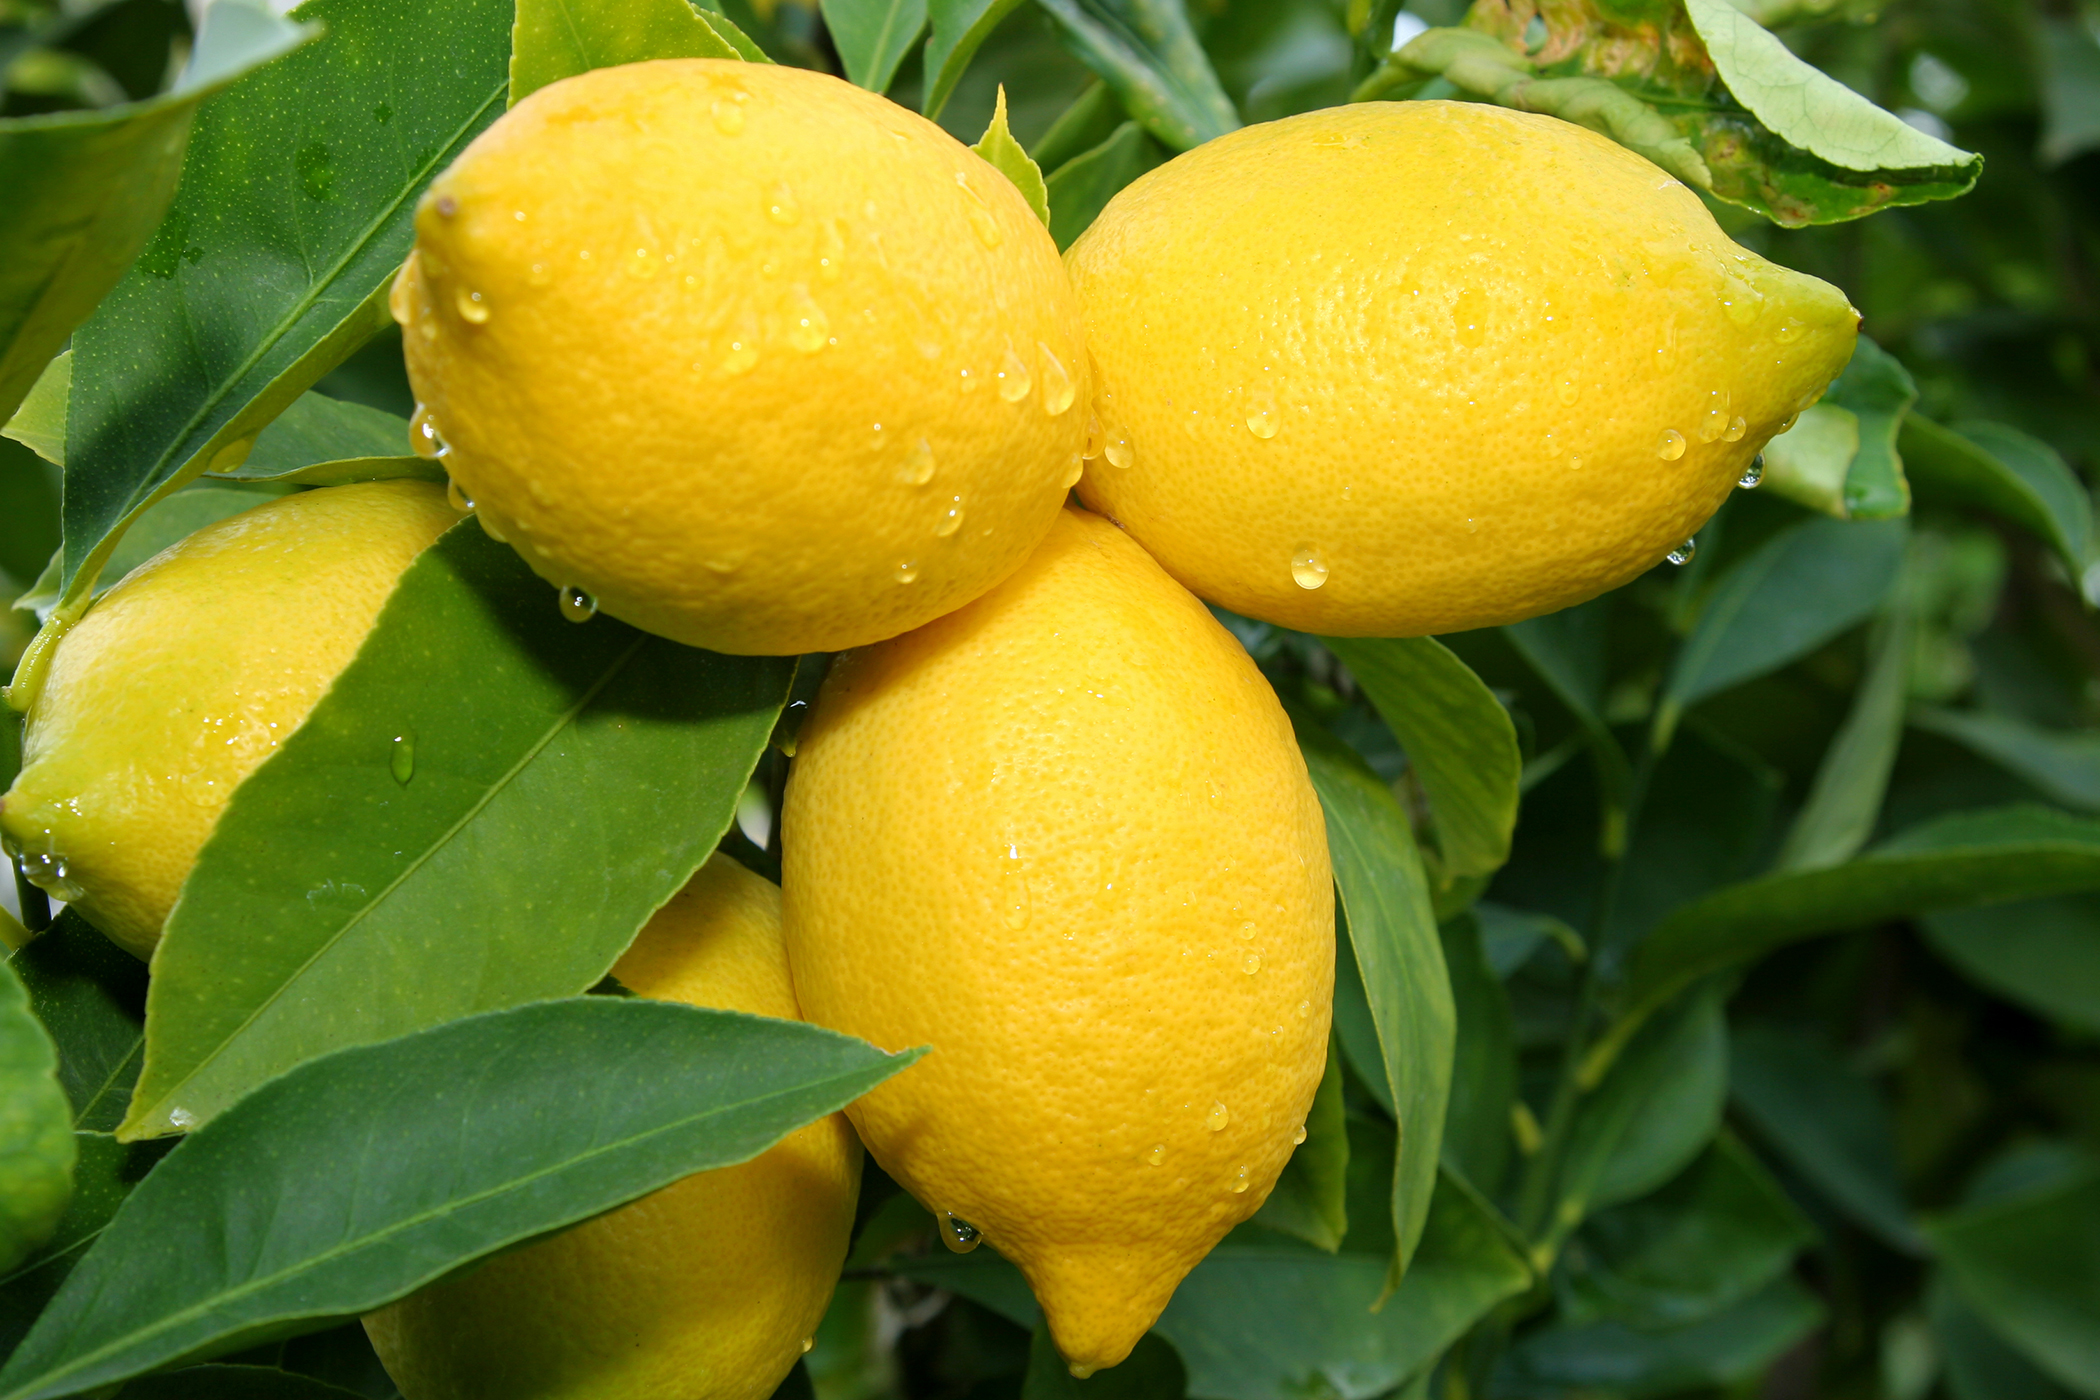 Lemon Poisoning in Cats